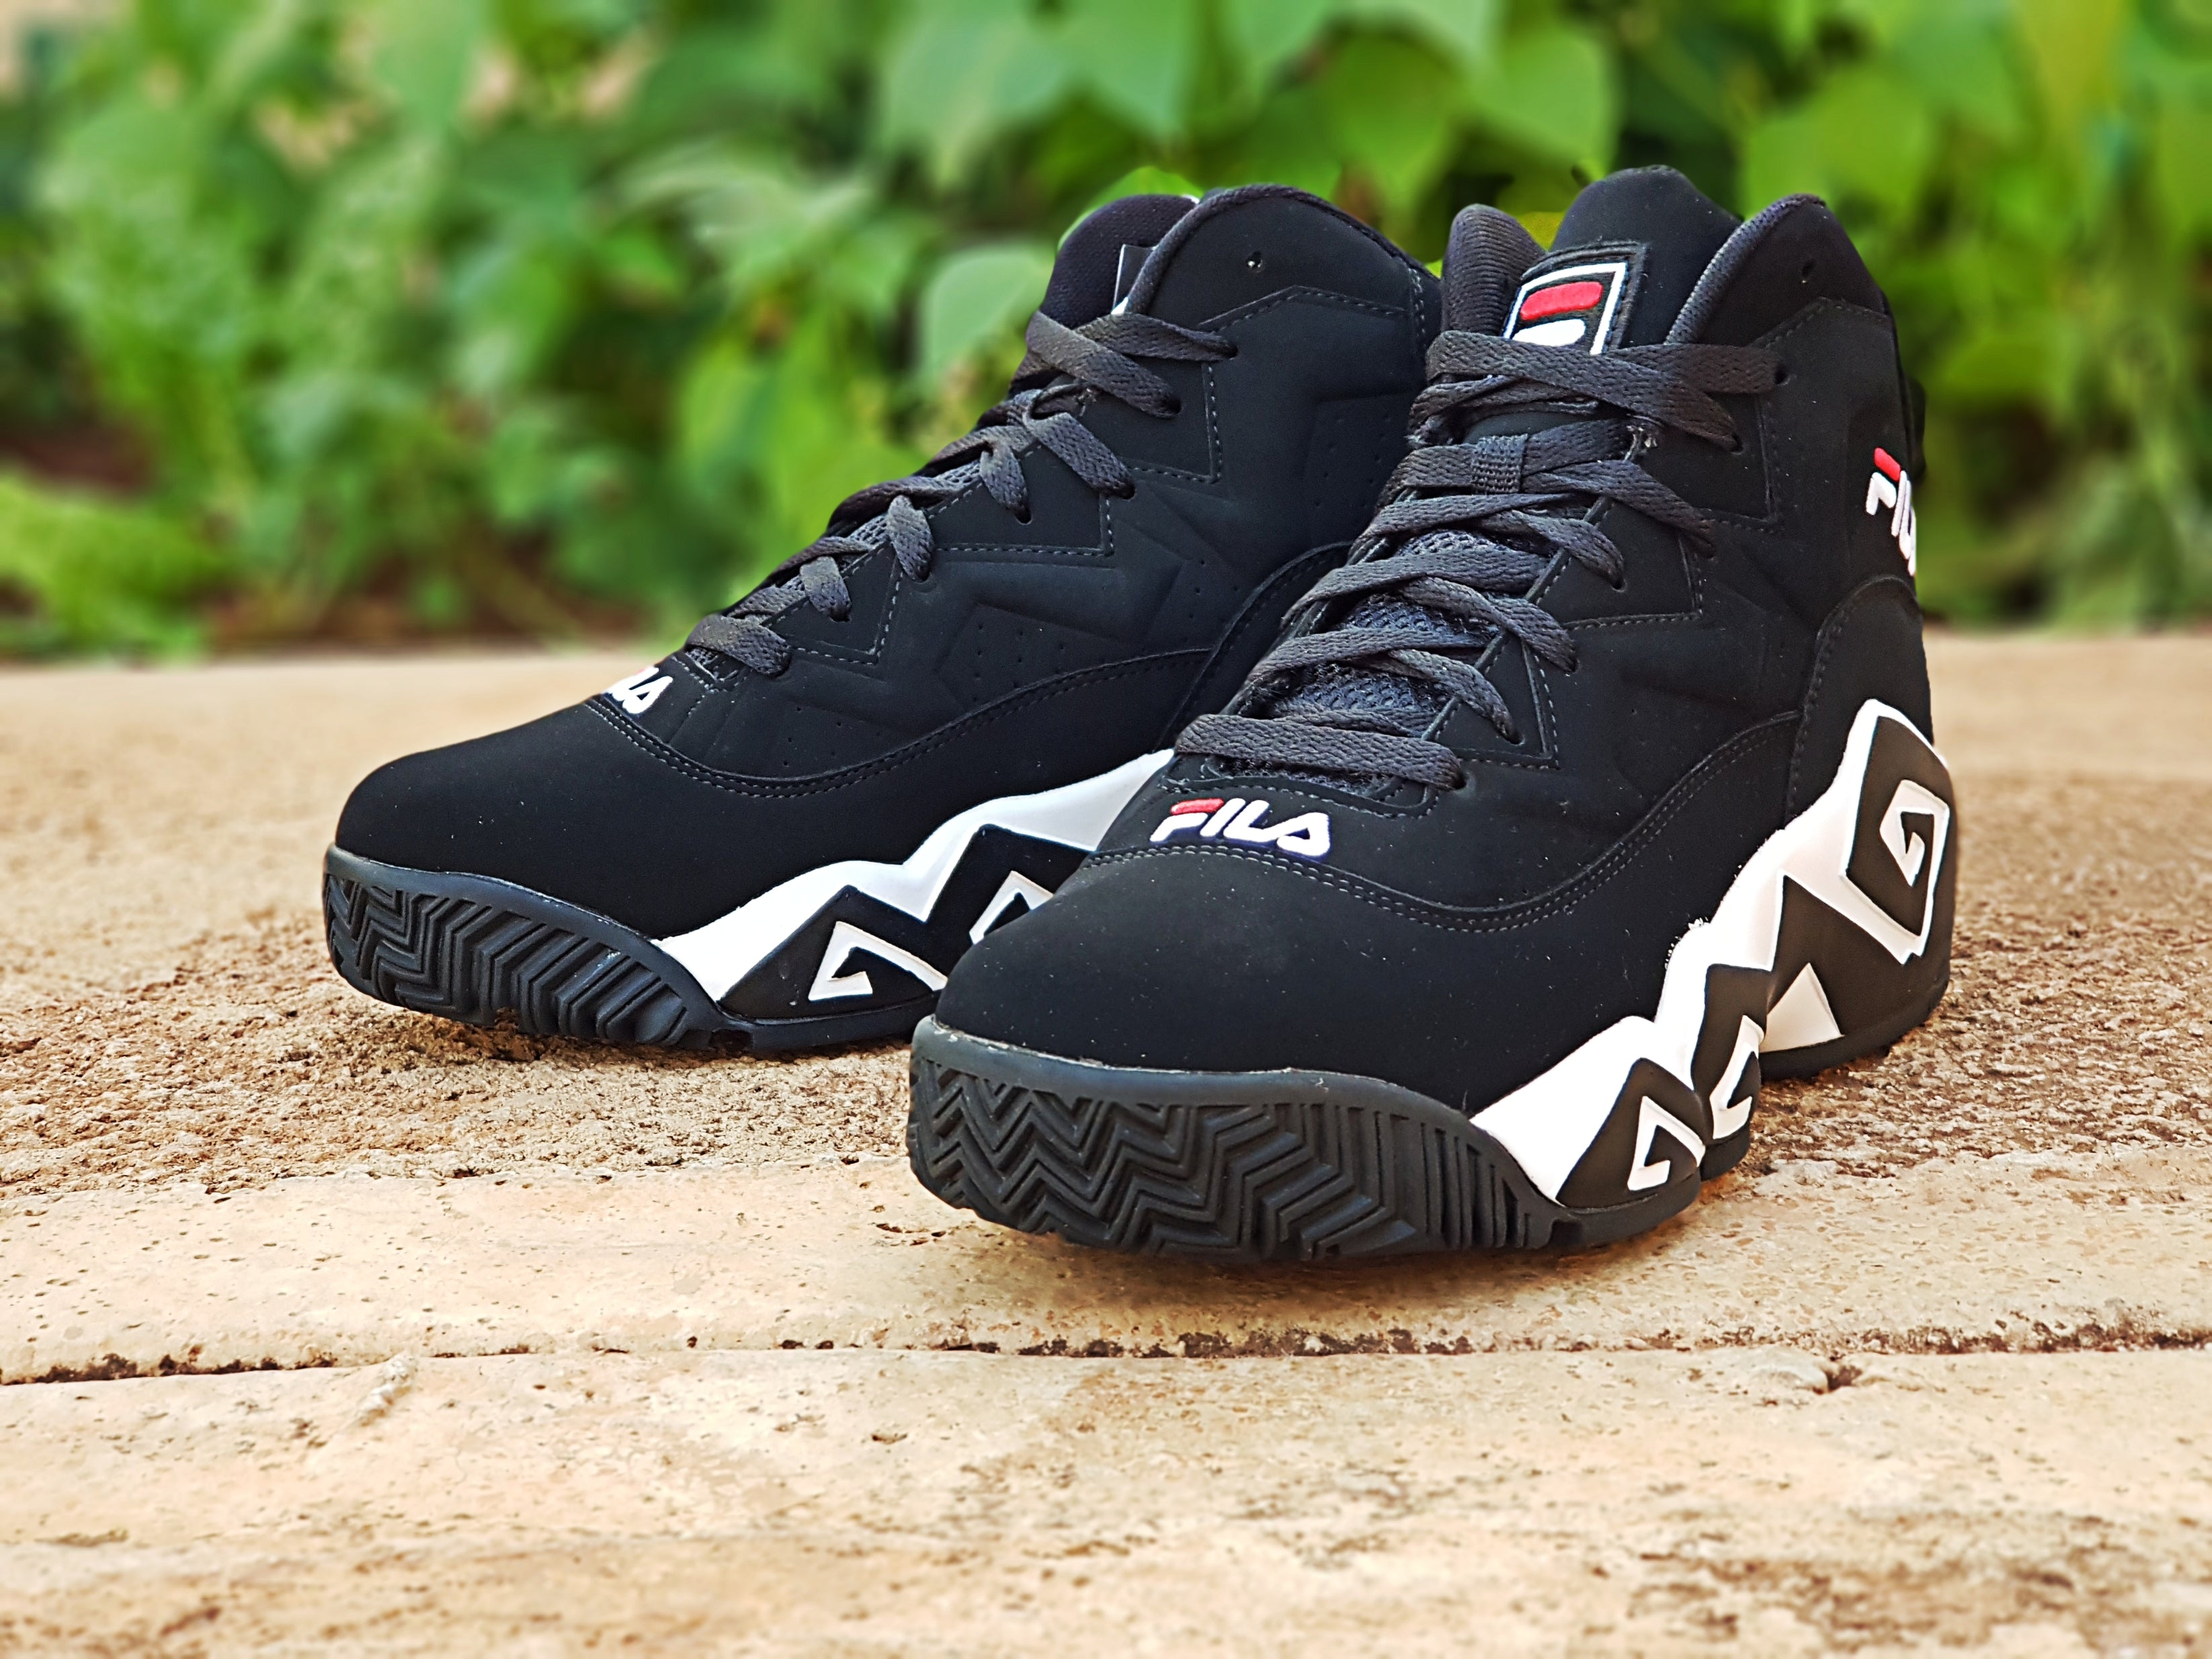 Picture Set: Fila MB (Under the Lights)